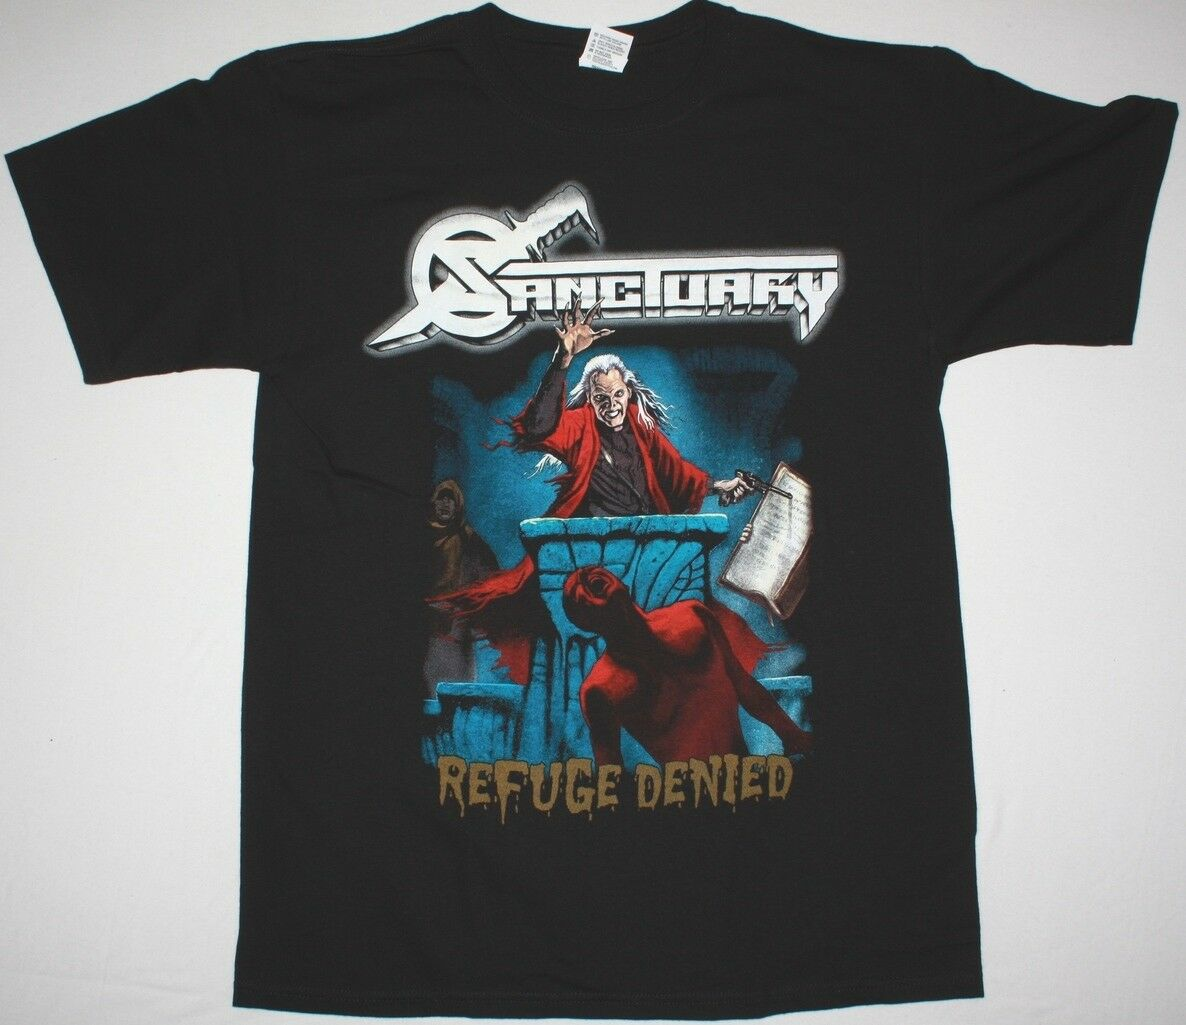 Control Denied The Fragile Art Of Existence T-shirt NOUVEAU Relapse Records TS4182